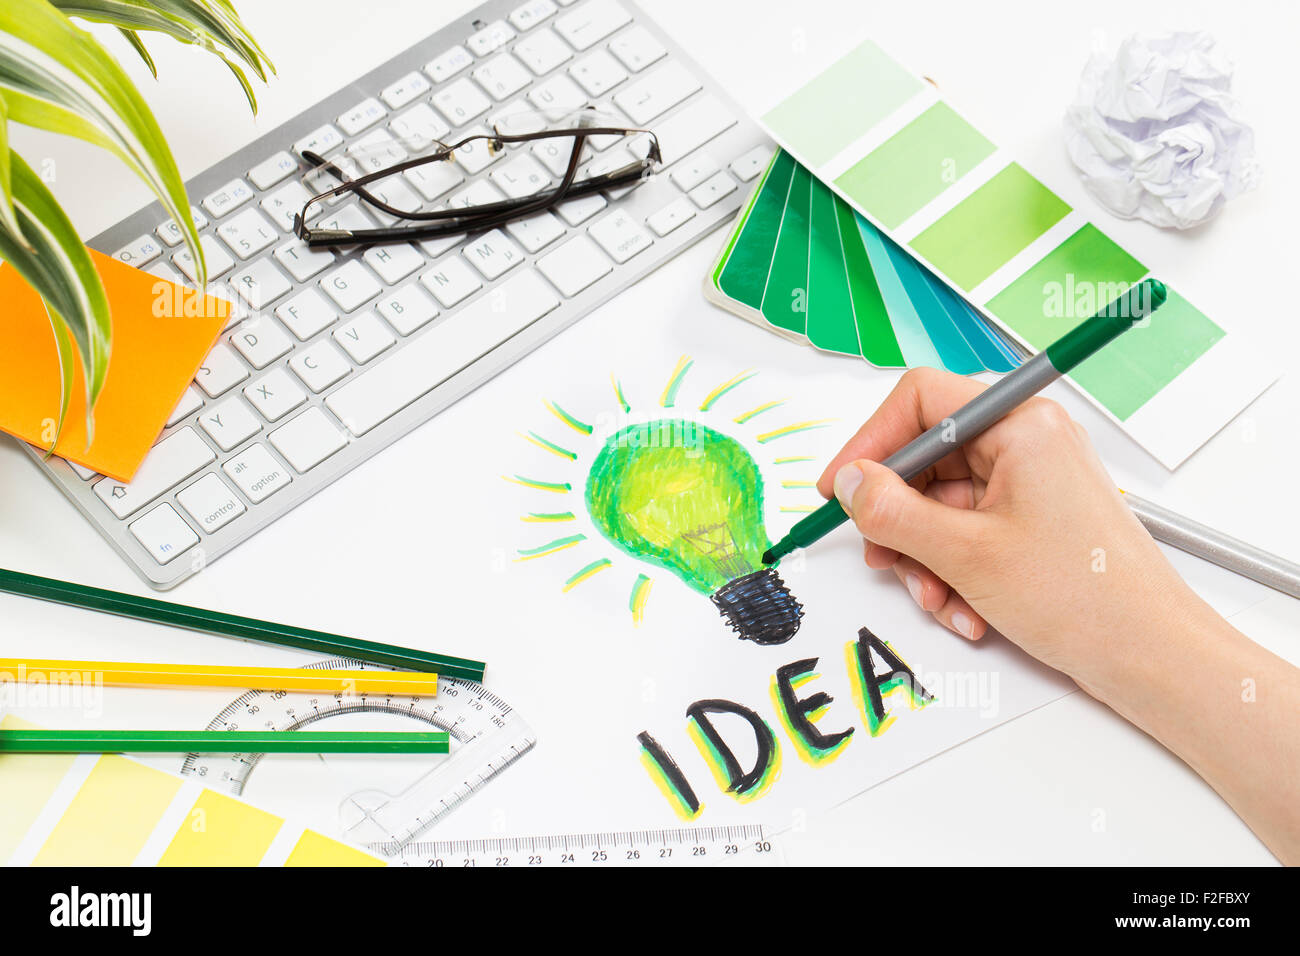 Designer drawing a green light bulb. Brainstorming and inspiration cocnept. - Stock Image